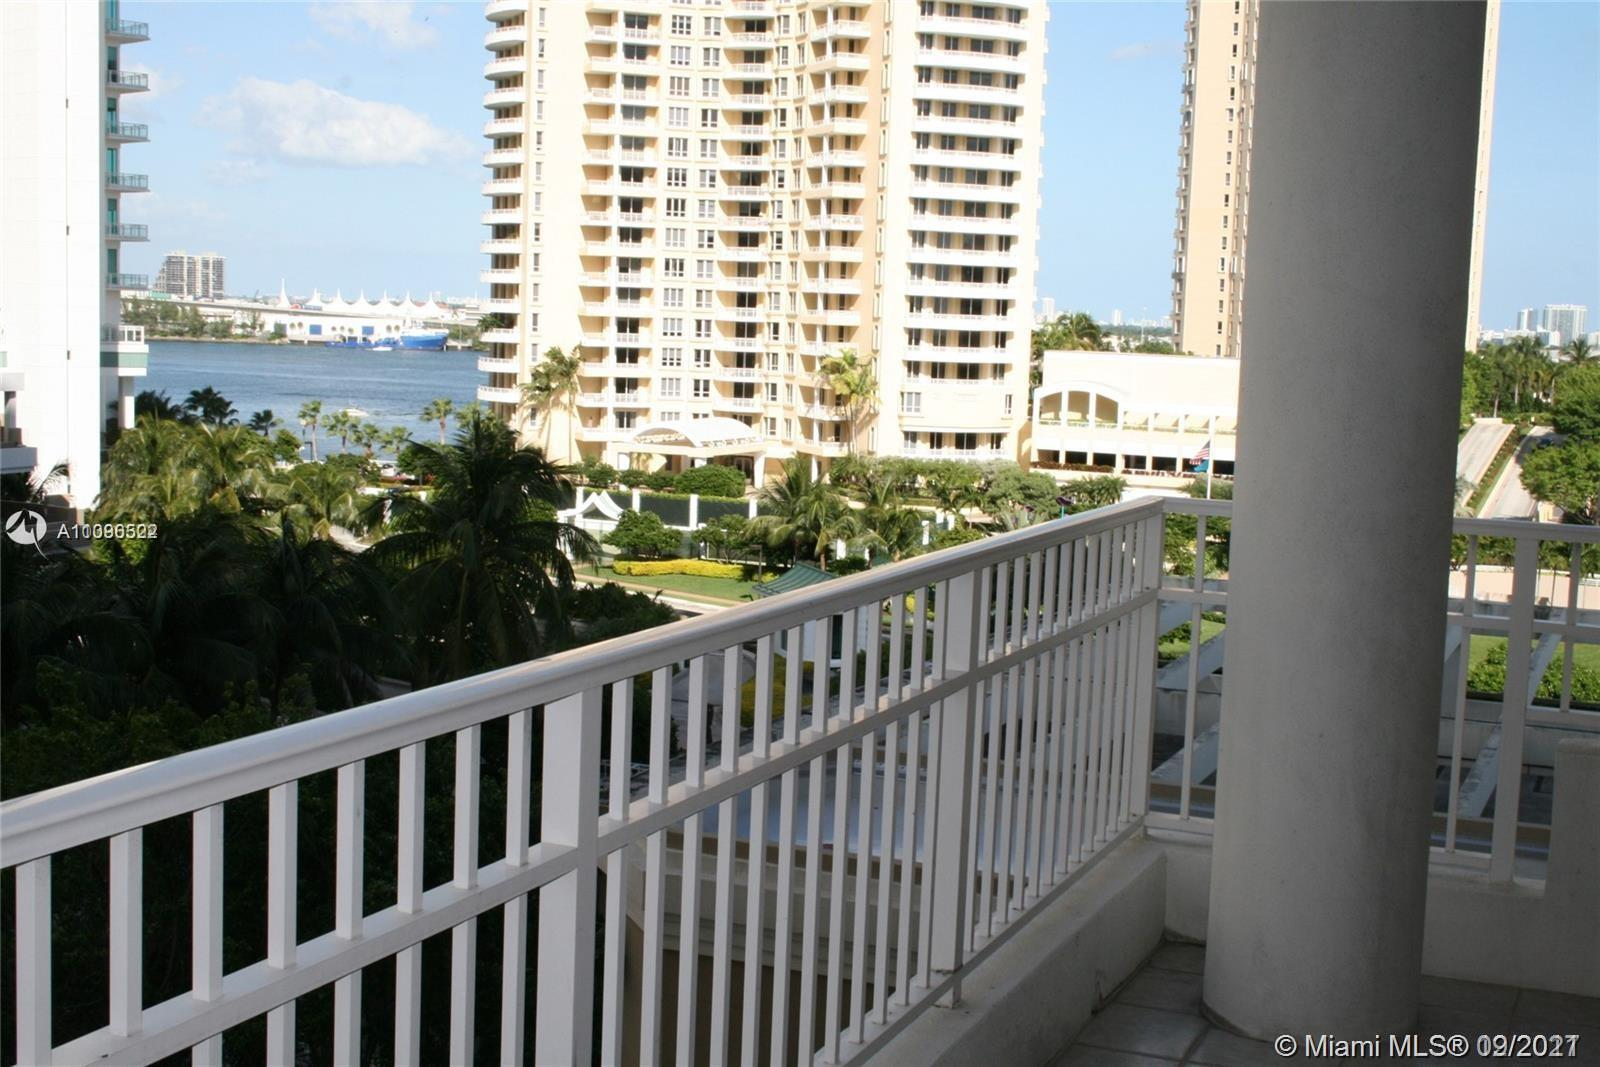 For sale one bedroom, one bathroom plus powder room in Courvoisier Courts in Brickell Key. Carpet fl